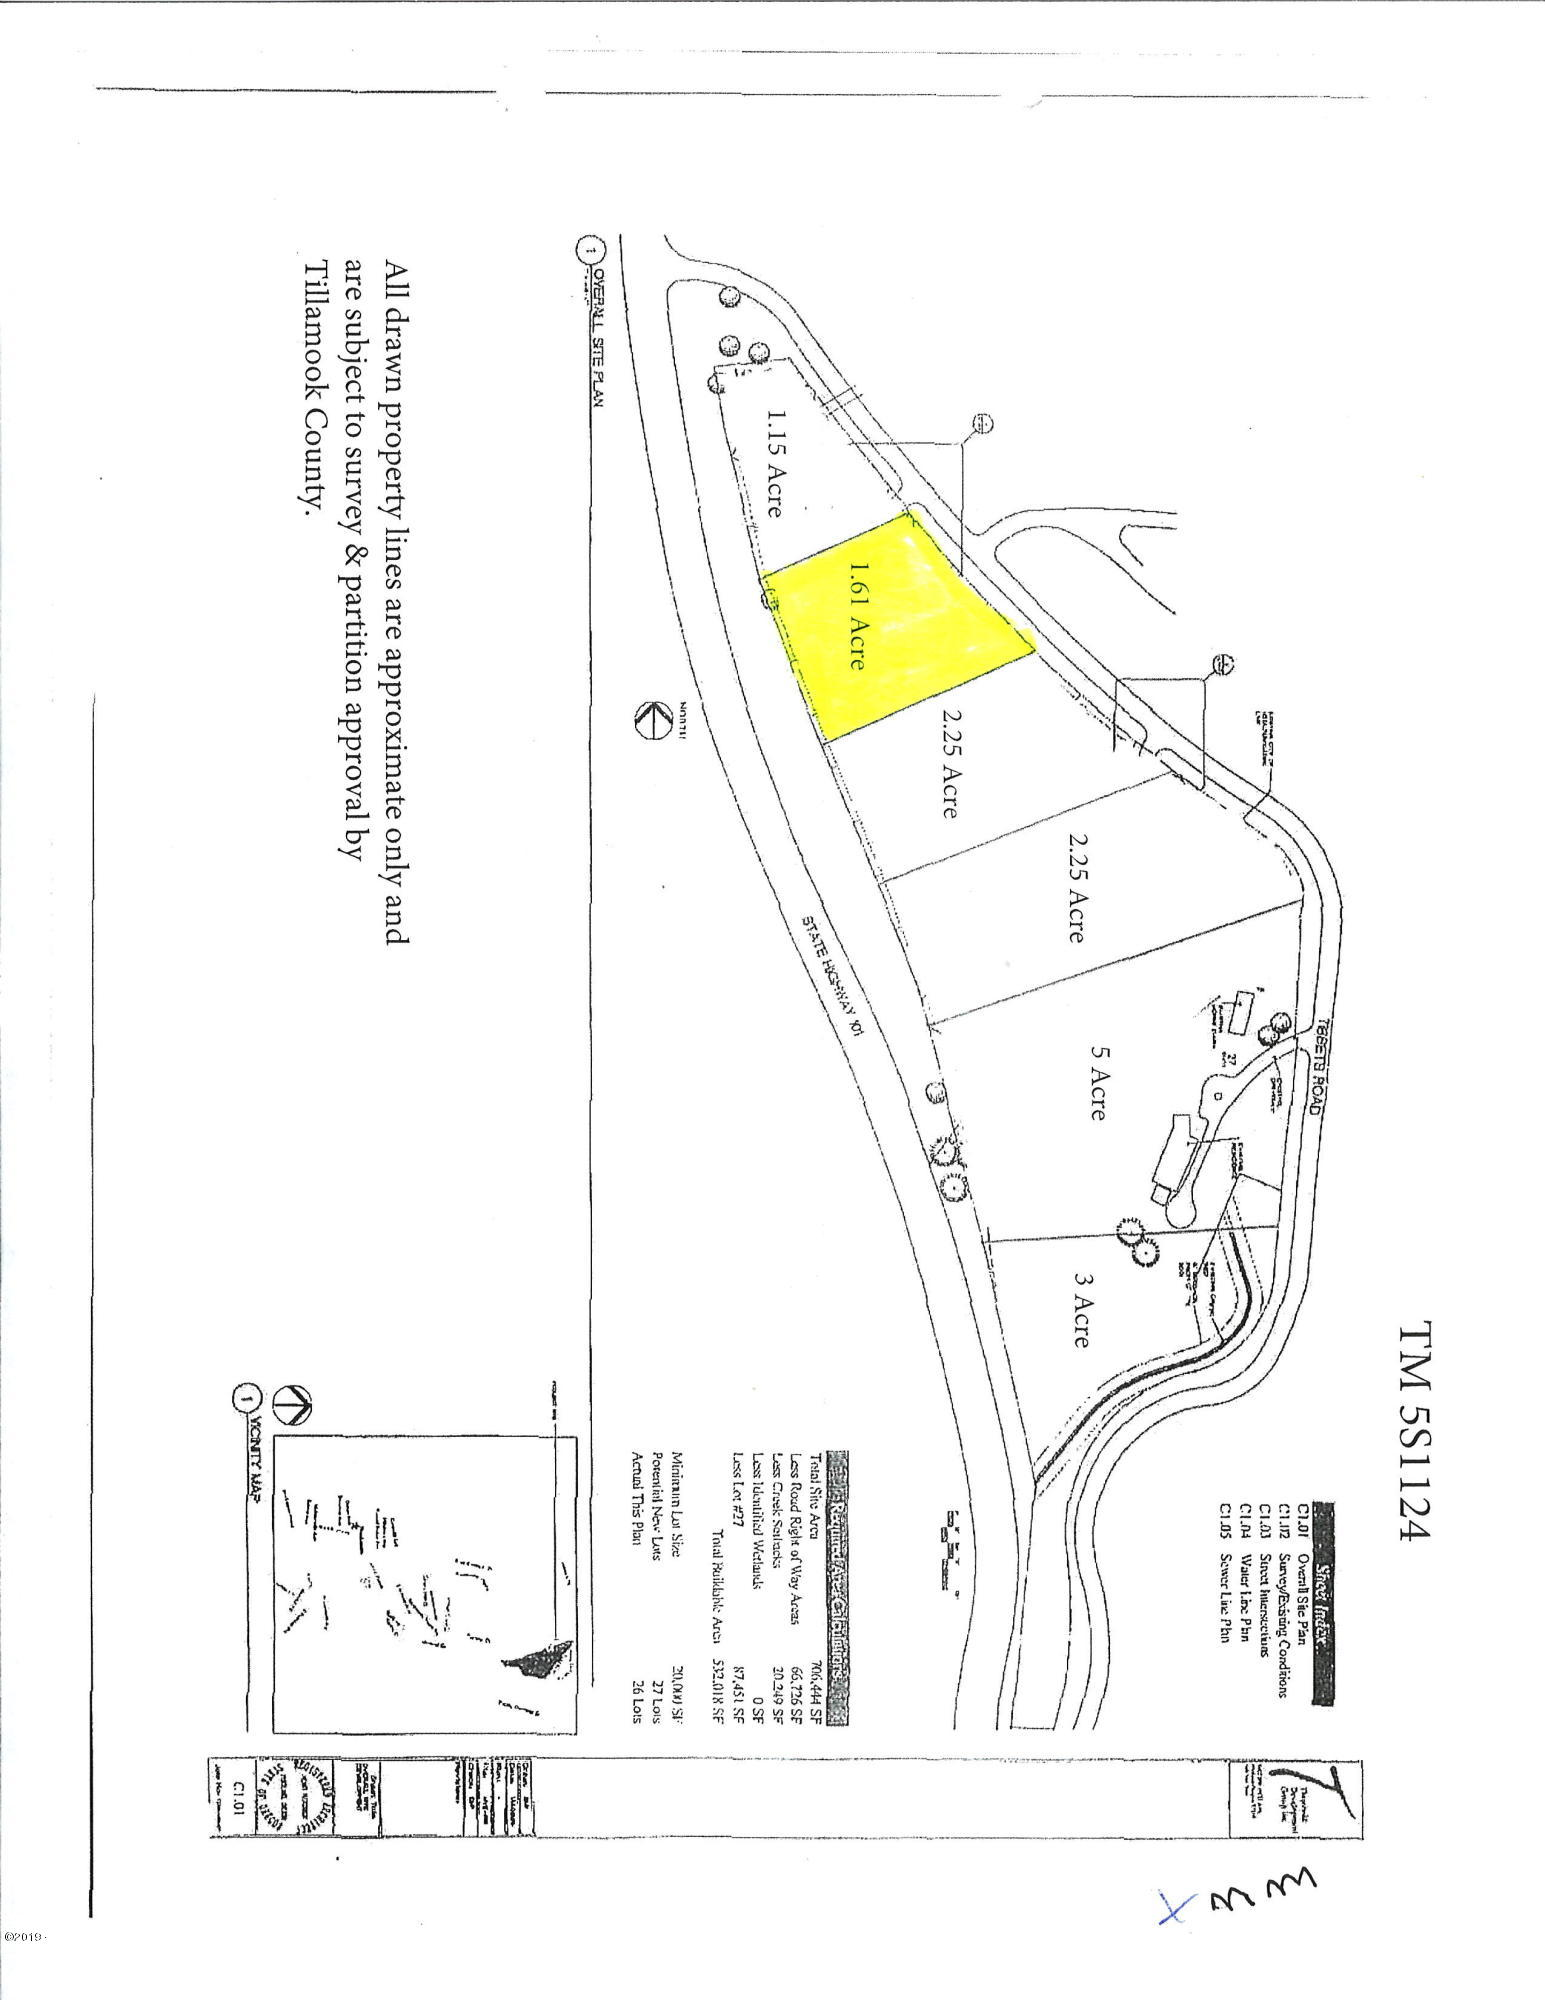 45000 BLK Tibbetts Rd, Neskowin, OR 97149 - 1.61 acres